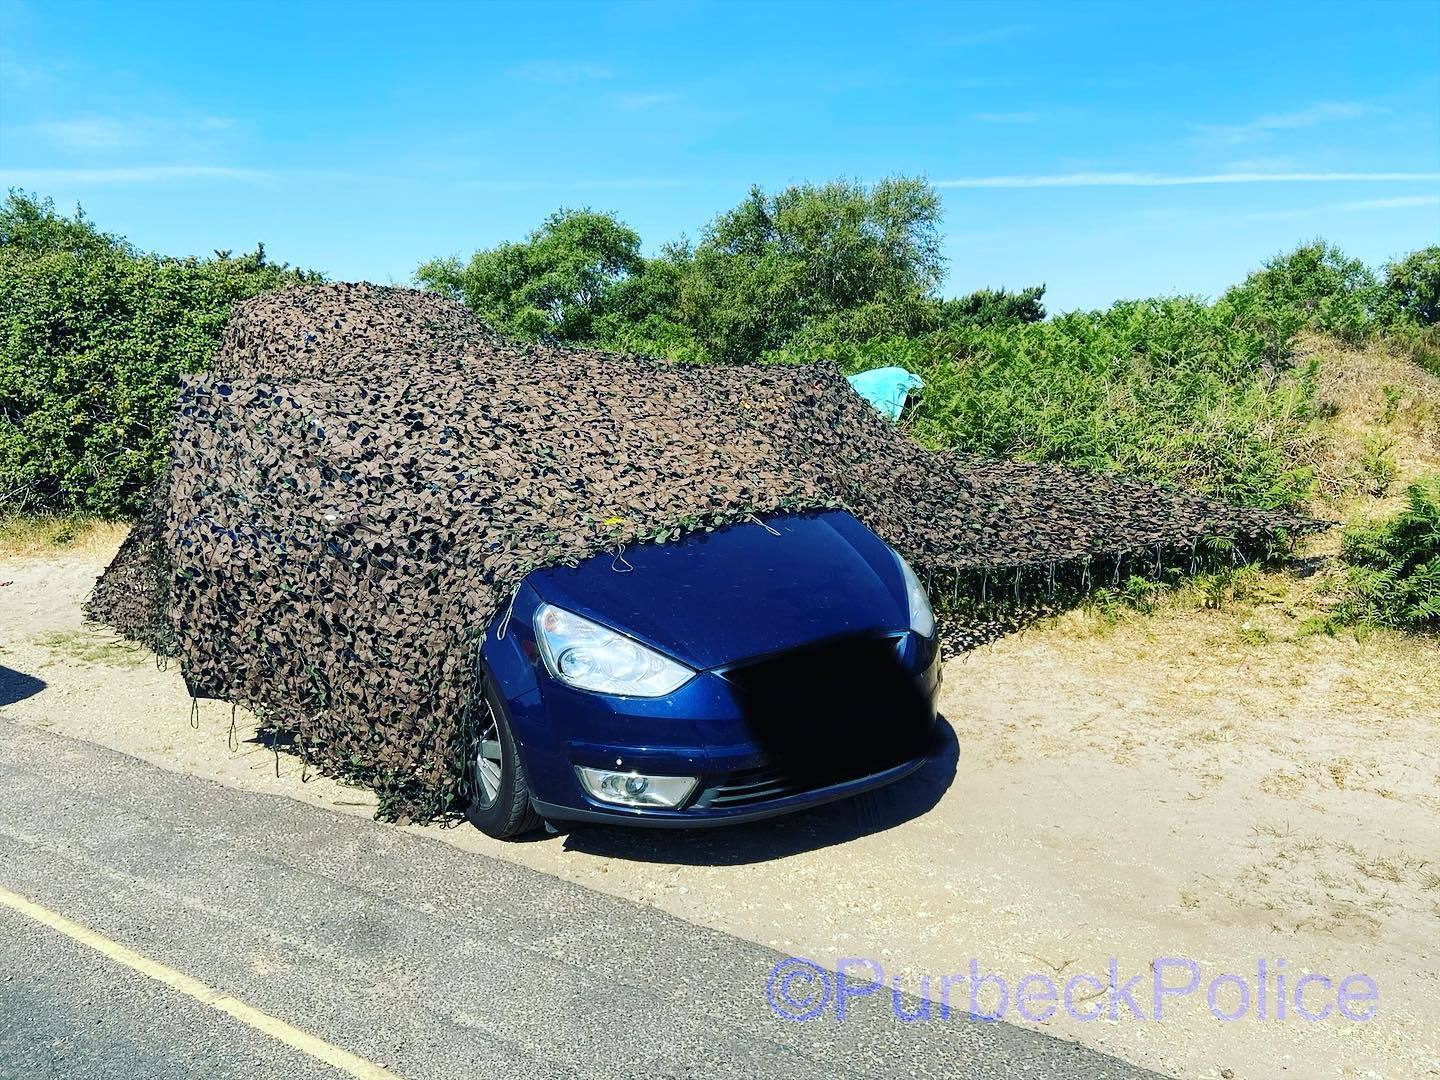 Bizarre attempt to camouflage a car at Studland is rumbled by police